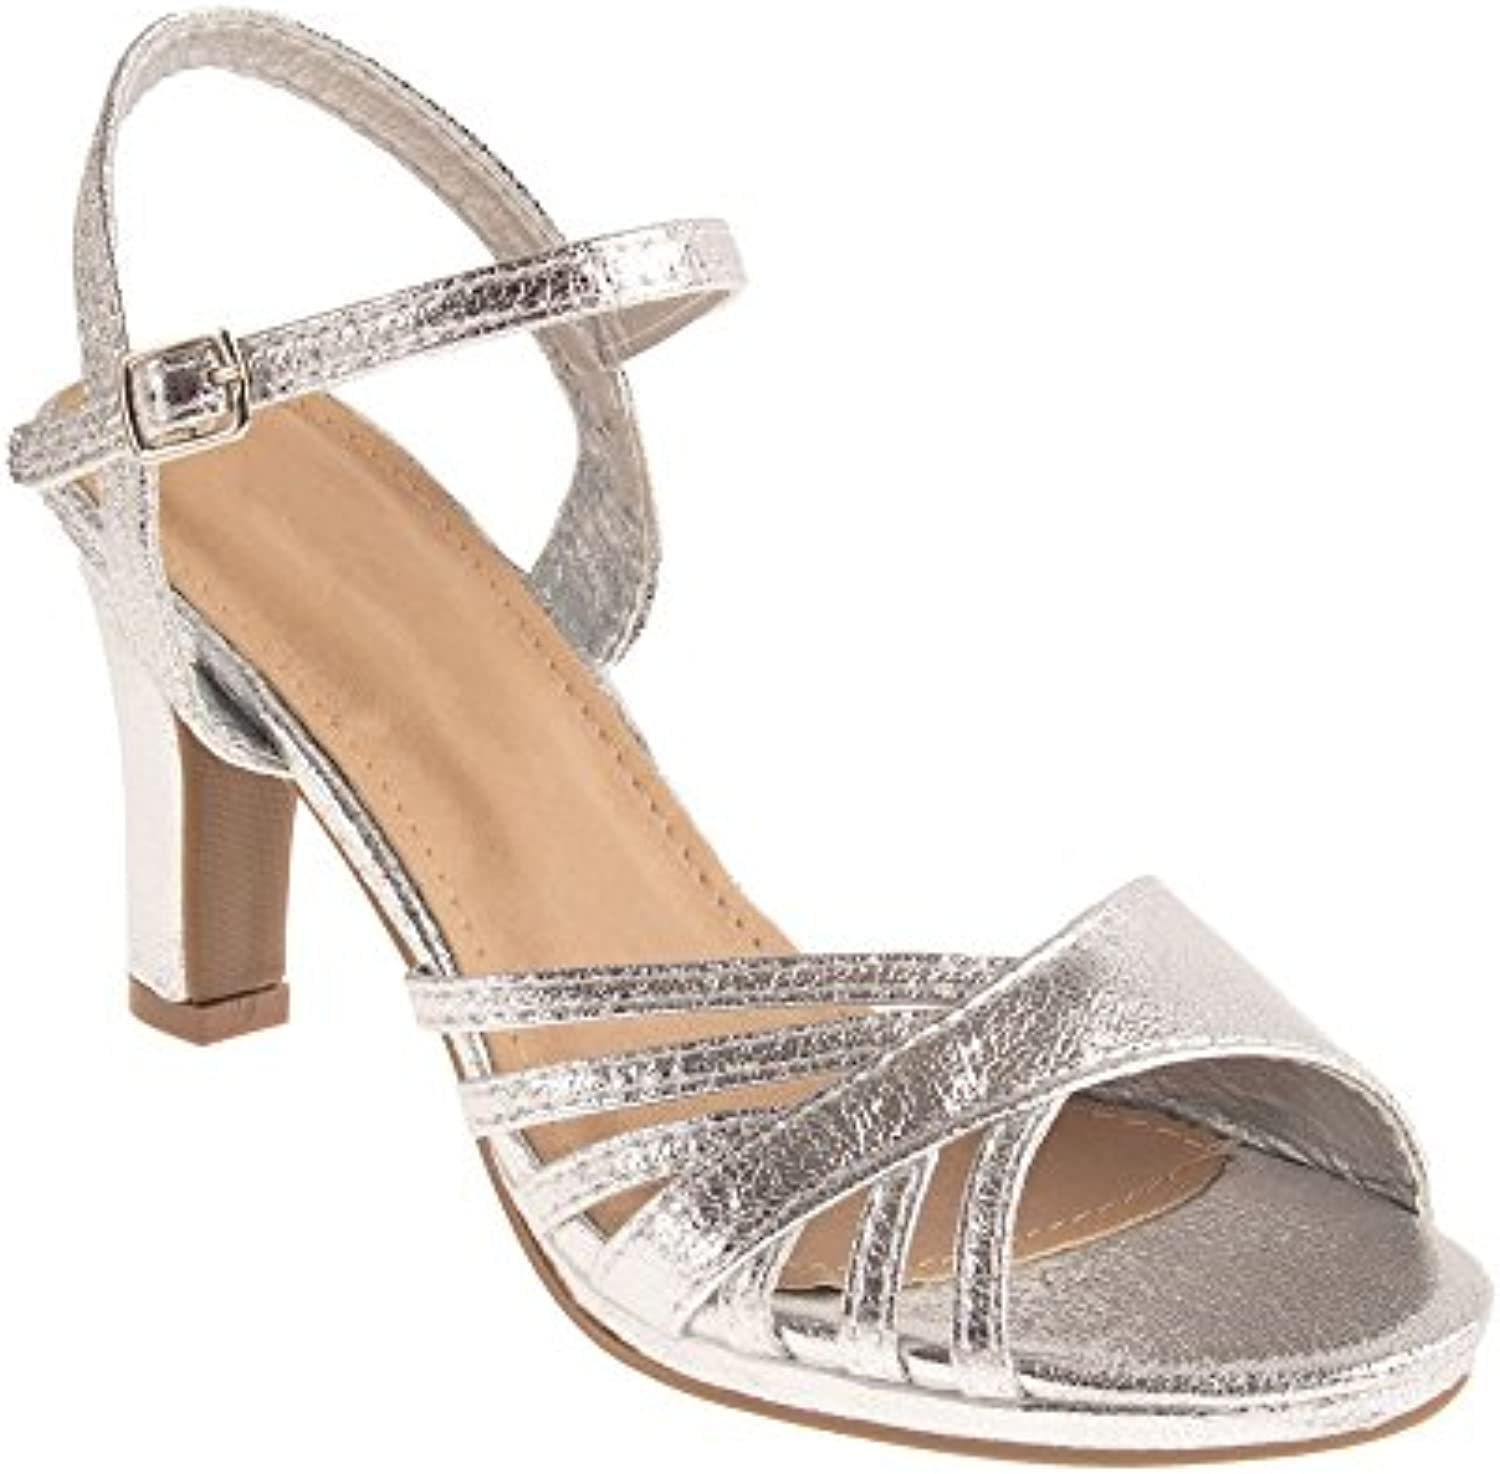 Chaussures Mariage Mariage Mariage Femme argentées